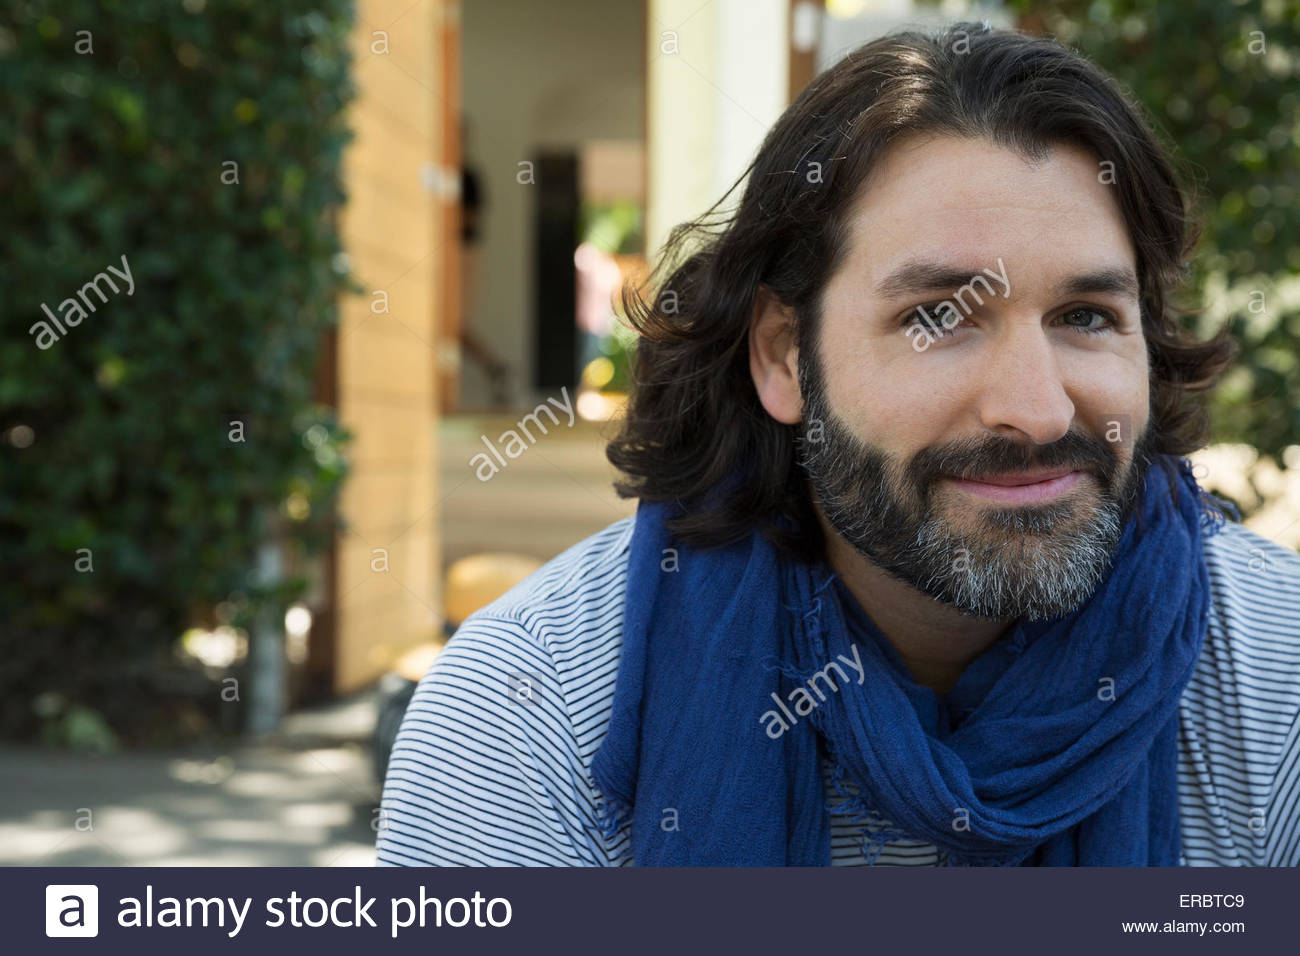 Portrait of smiling man with beard wearing scarf Photo Stock